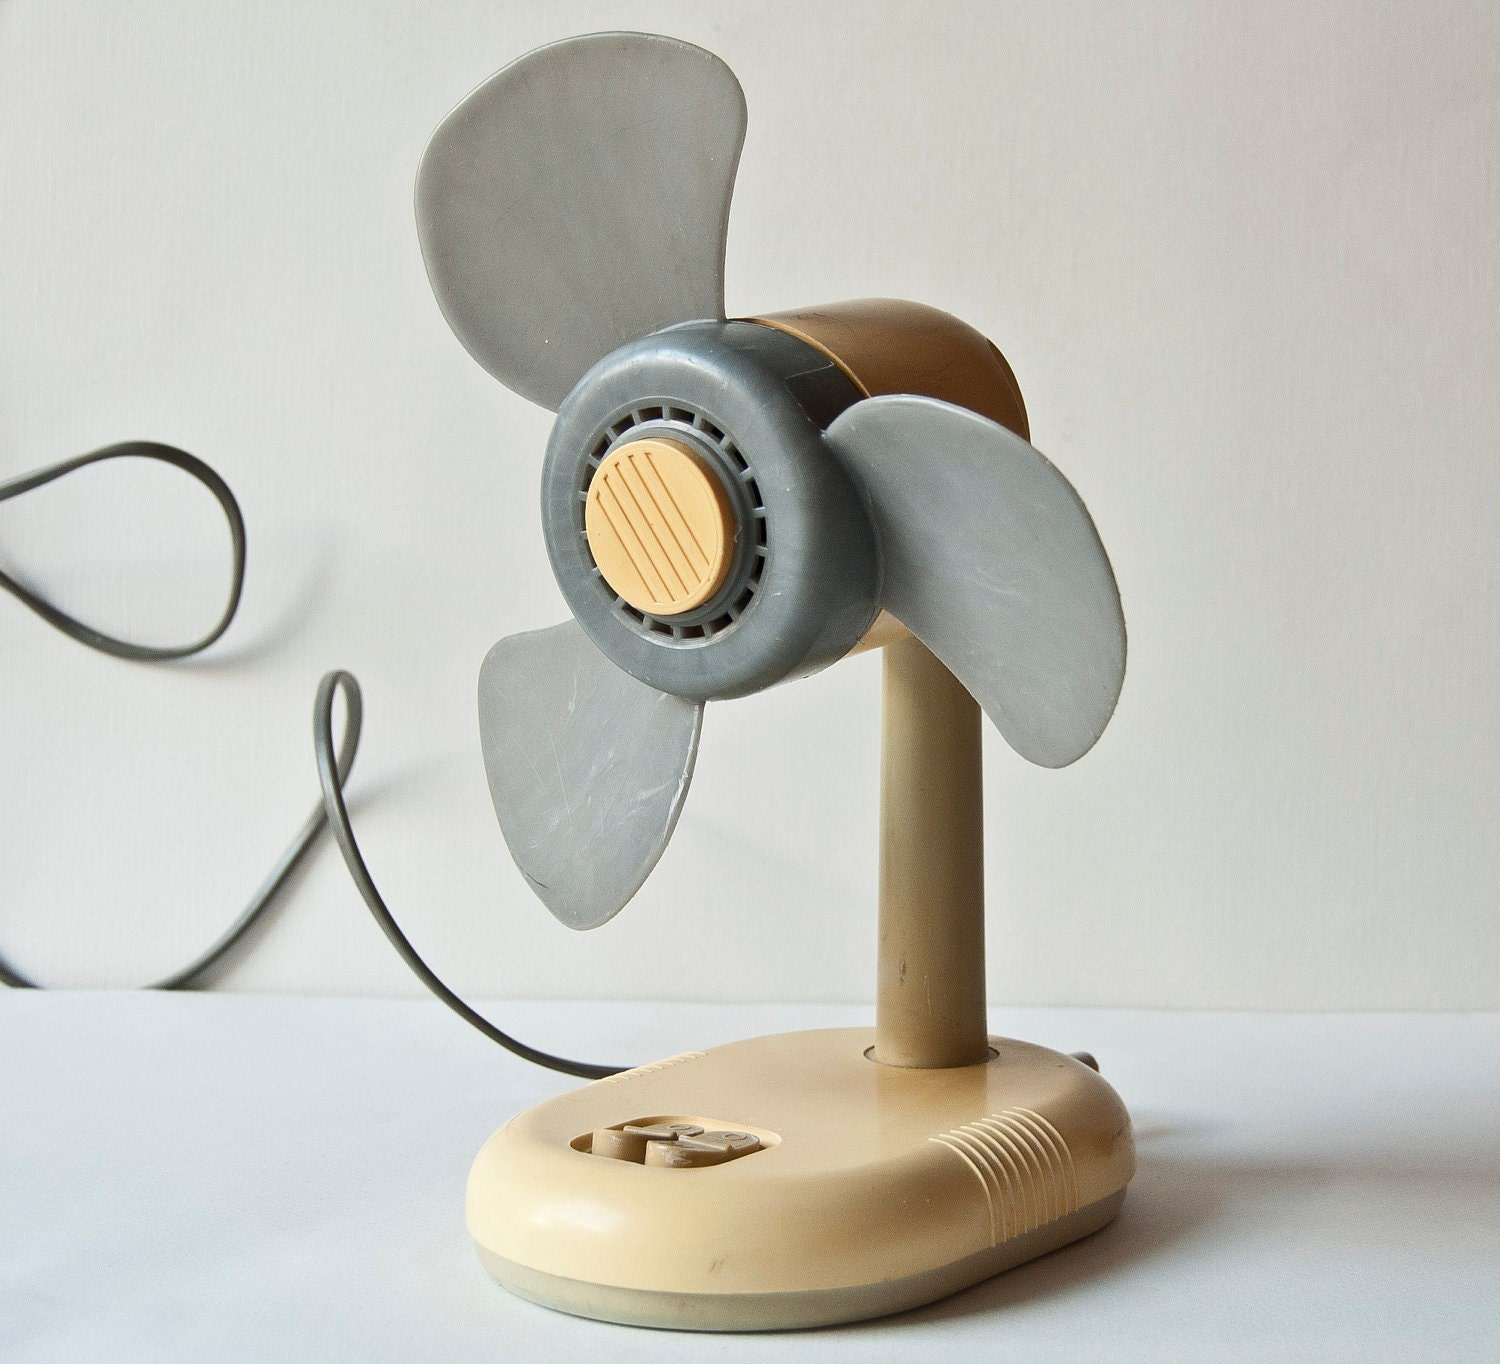 Little Desk Fan : Vintage electric fan little tabletop desk ventilator